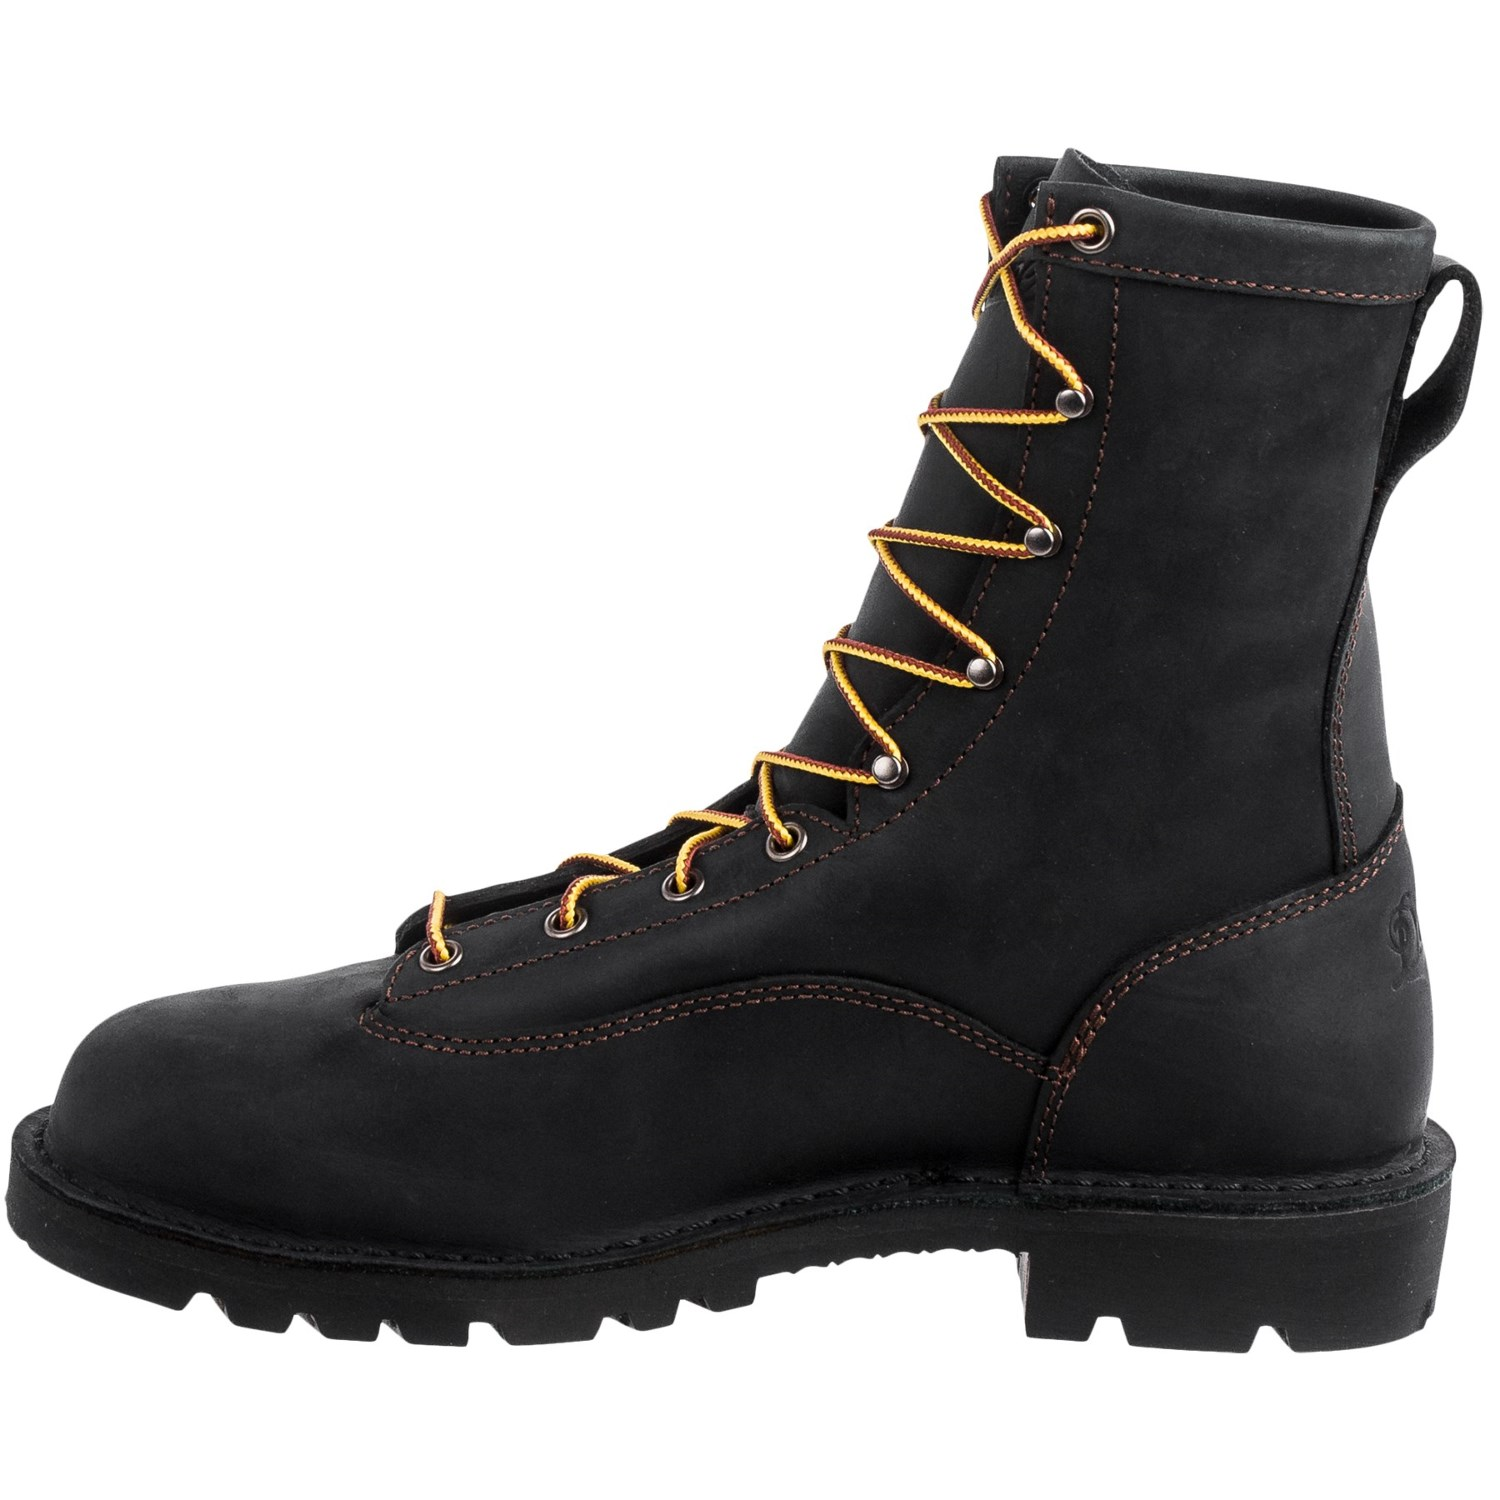 Excellent Danner 21210 - Danner Menu0026#39;s Acadiau00ae Uninsulated Uniform Boots On Clearance At Dungarees Carhart ...